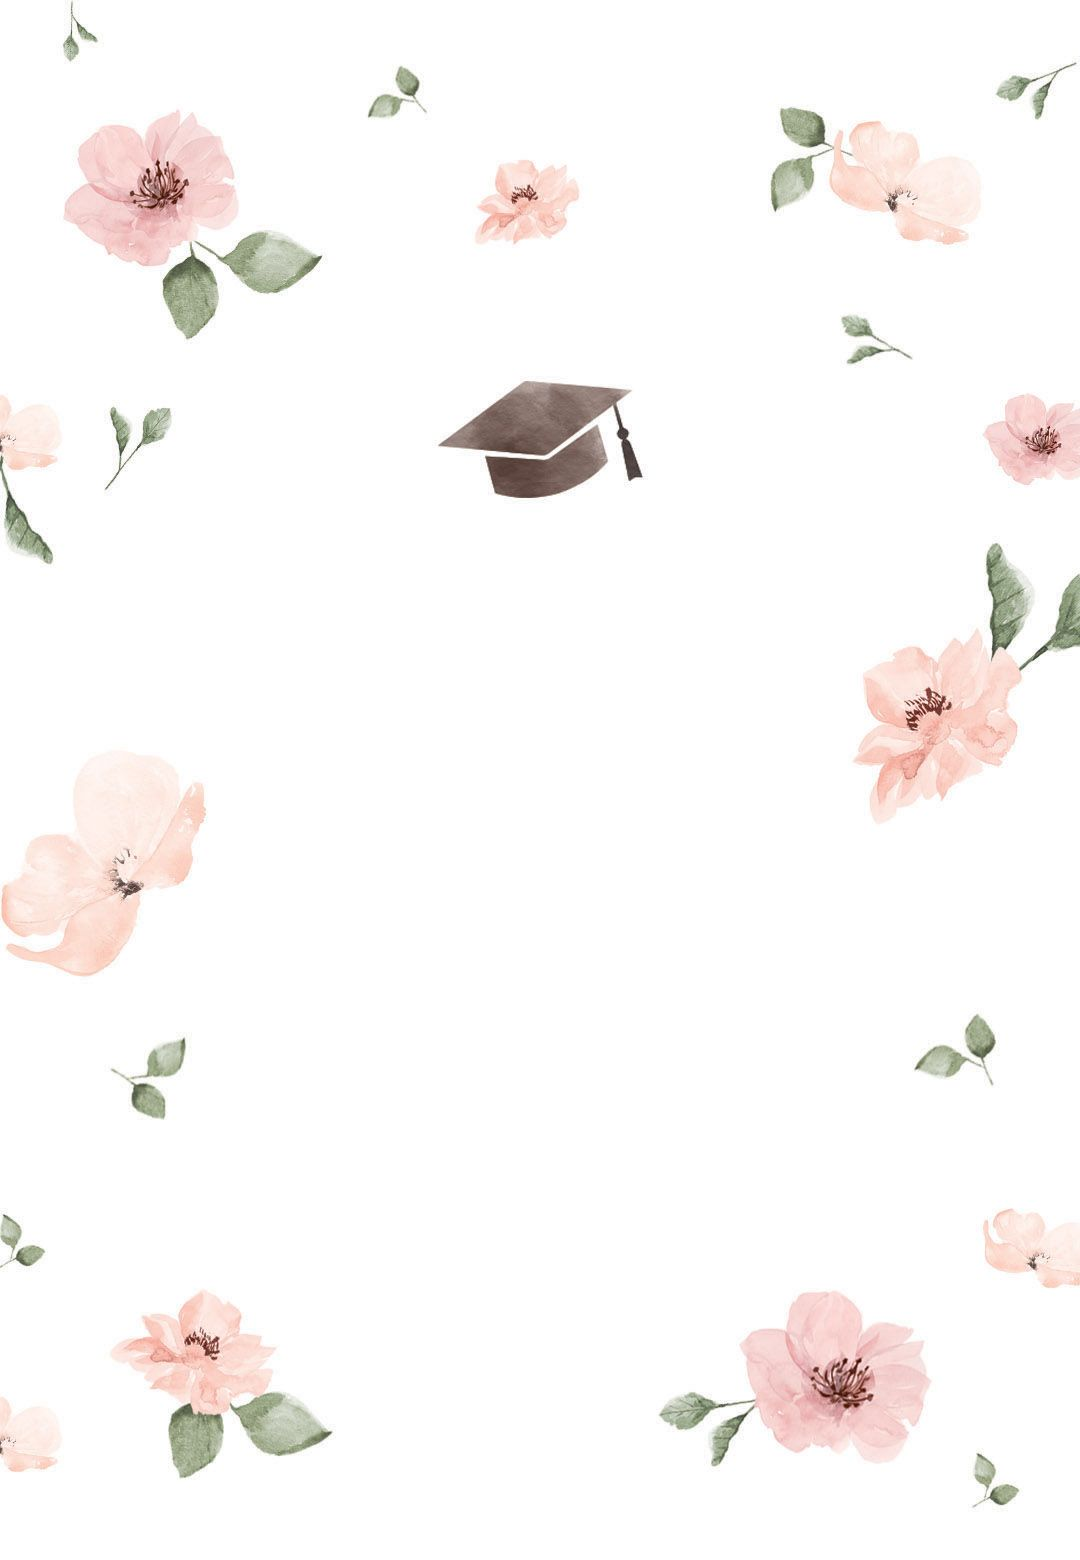 Cherry Blossom Graduation Party Invitation Template Free Greetings Island Graduation Party Invitations Graduation Invitations Template Party Invite Template